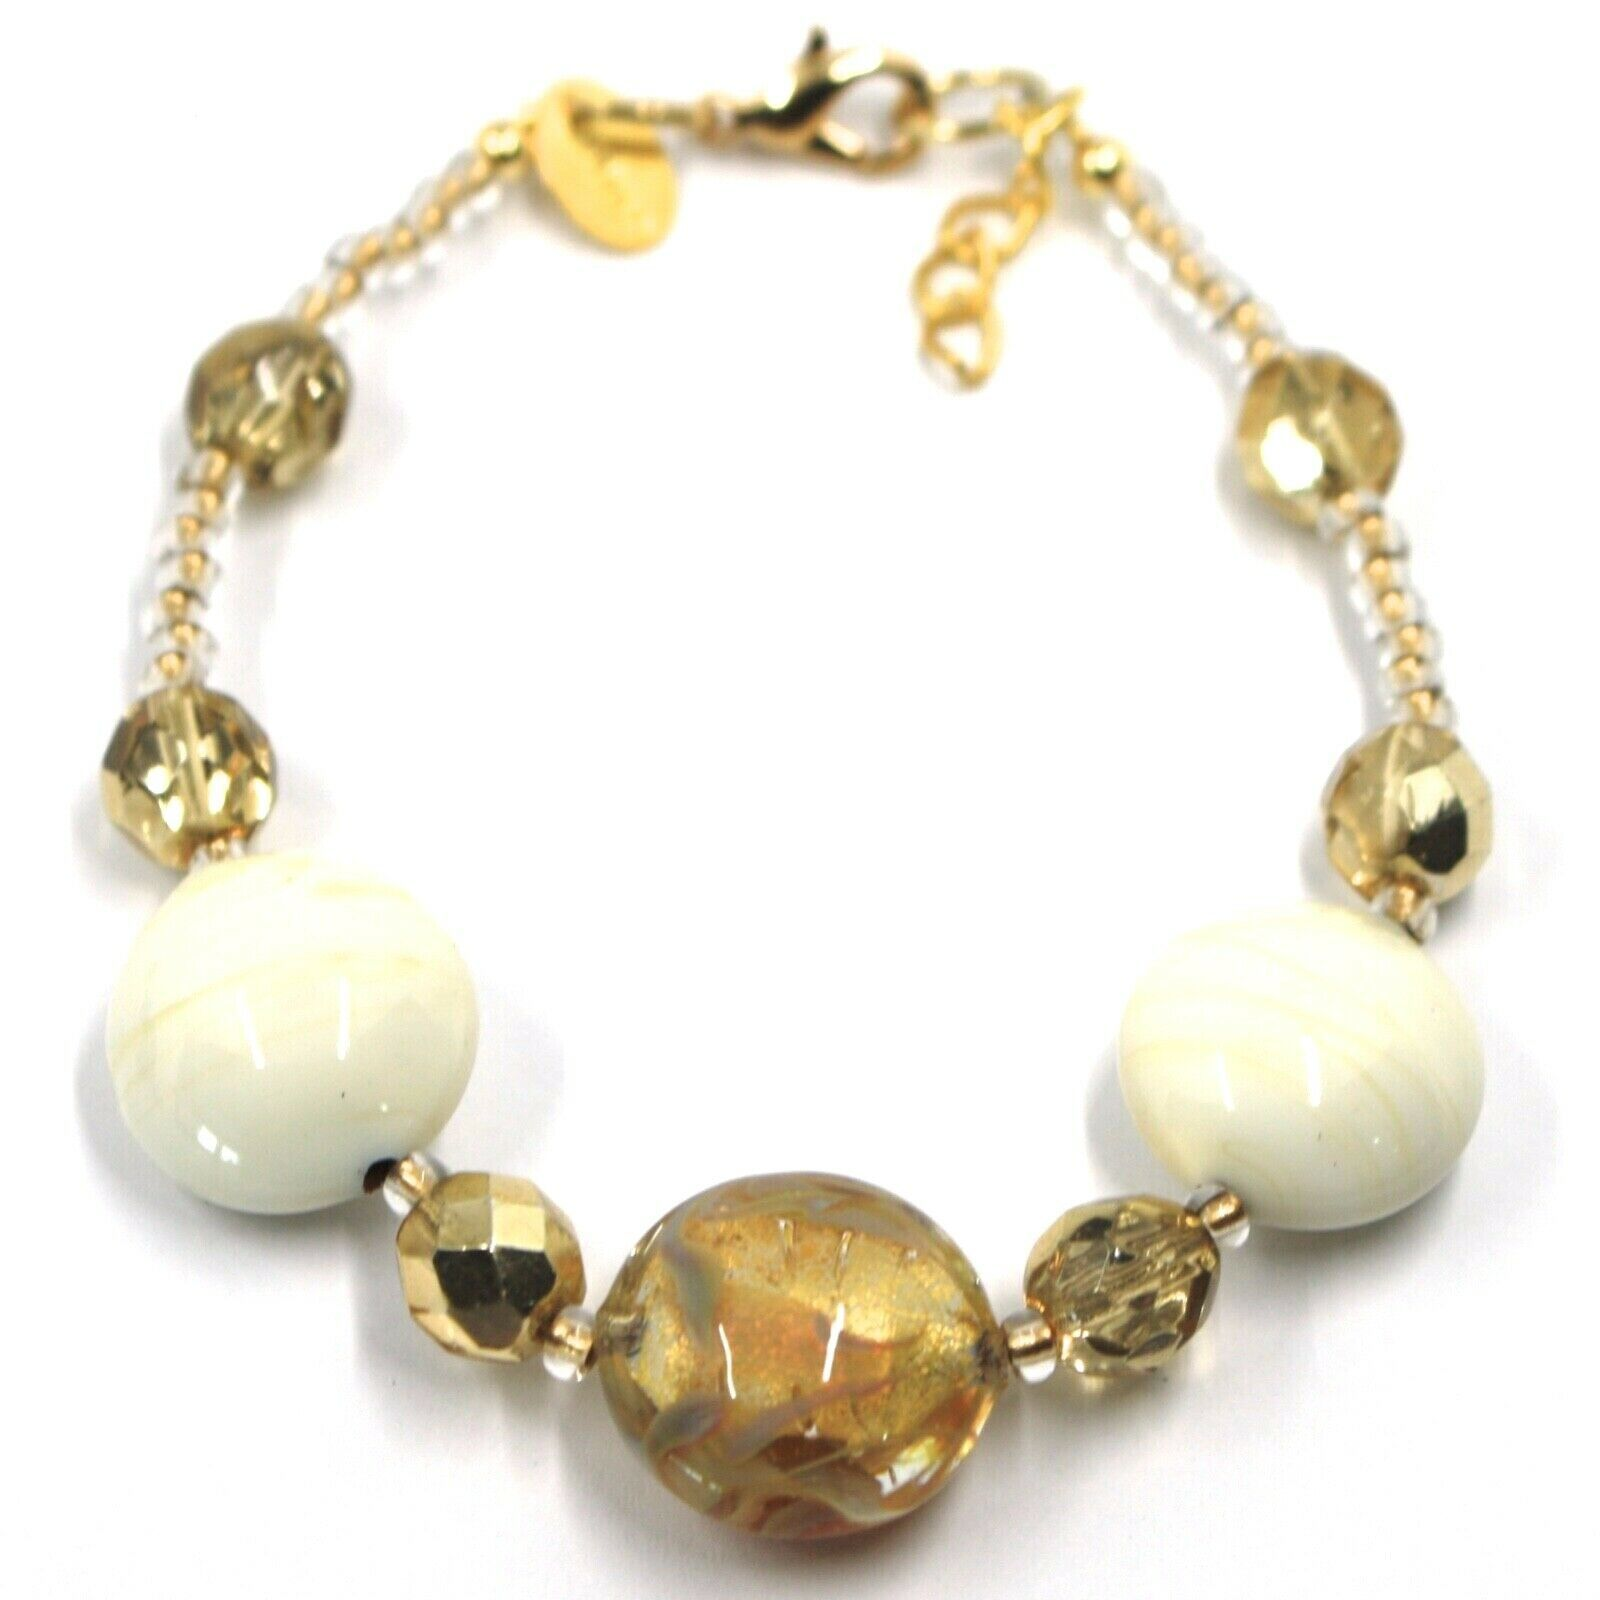 BRACELET WHITE YELLOW MURANO DISC GLASS & GOLD LEAF, MADE IN ITALY, 20cm, 7.9""